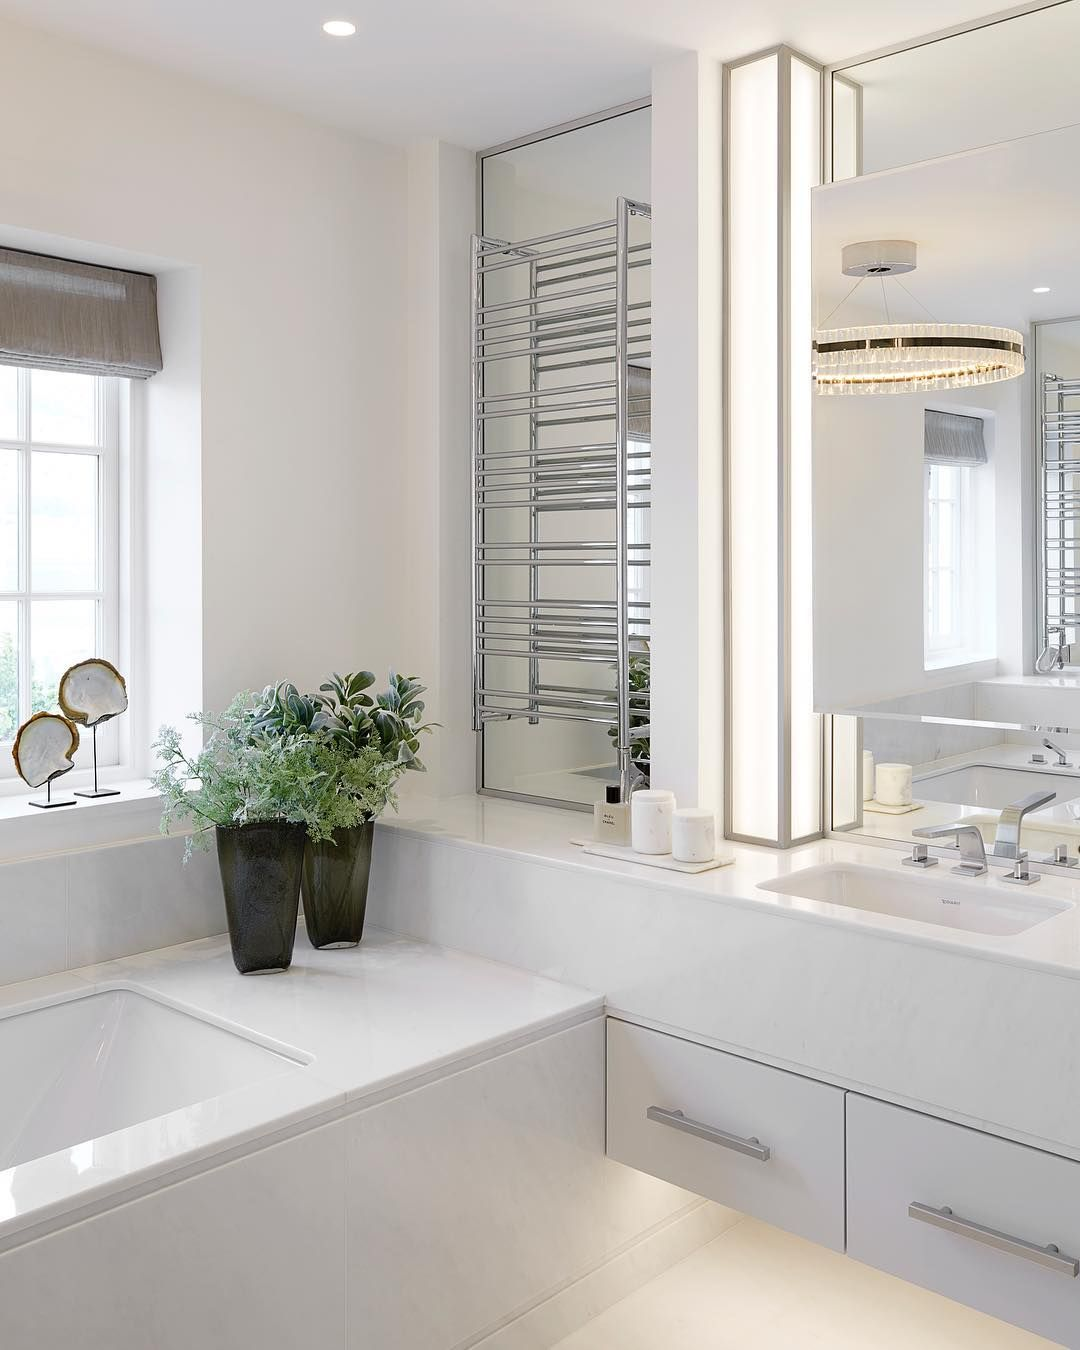 Ikea Bad Wörishofen White Marble Bathroom At Our Holland Park Project